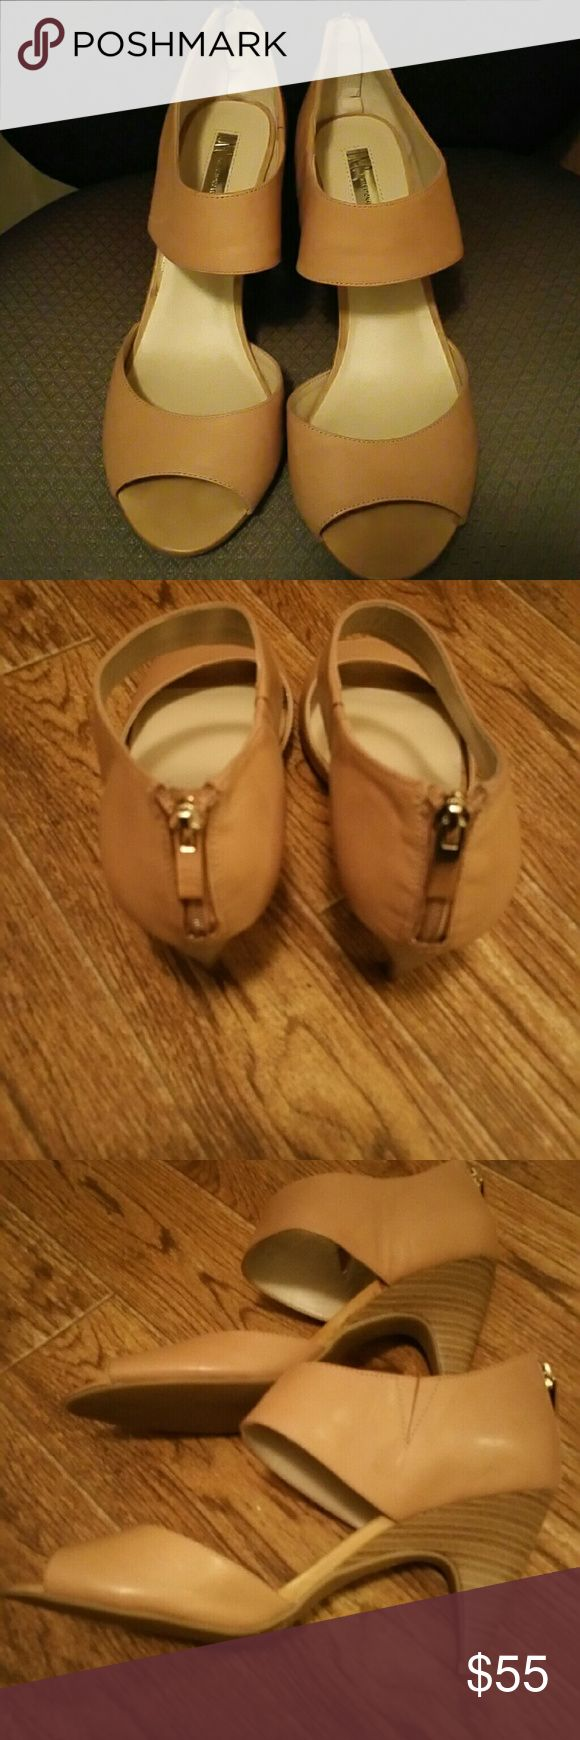 Taupe/Tan ladies shoes purchased at Macys New- tried on but never worn. No flaws, add.l pics upon request. Shoes Heels